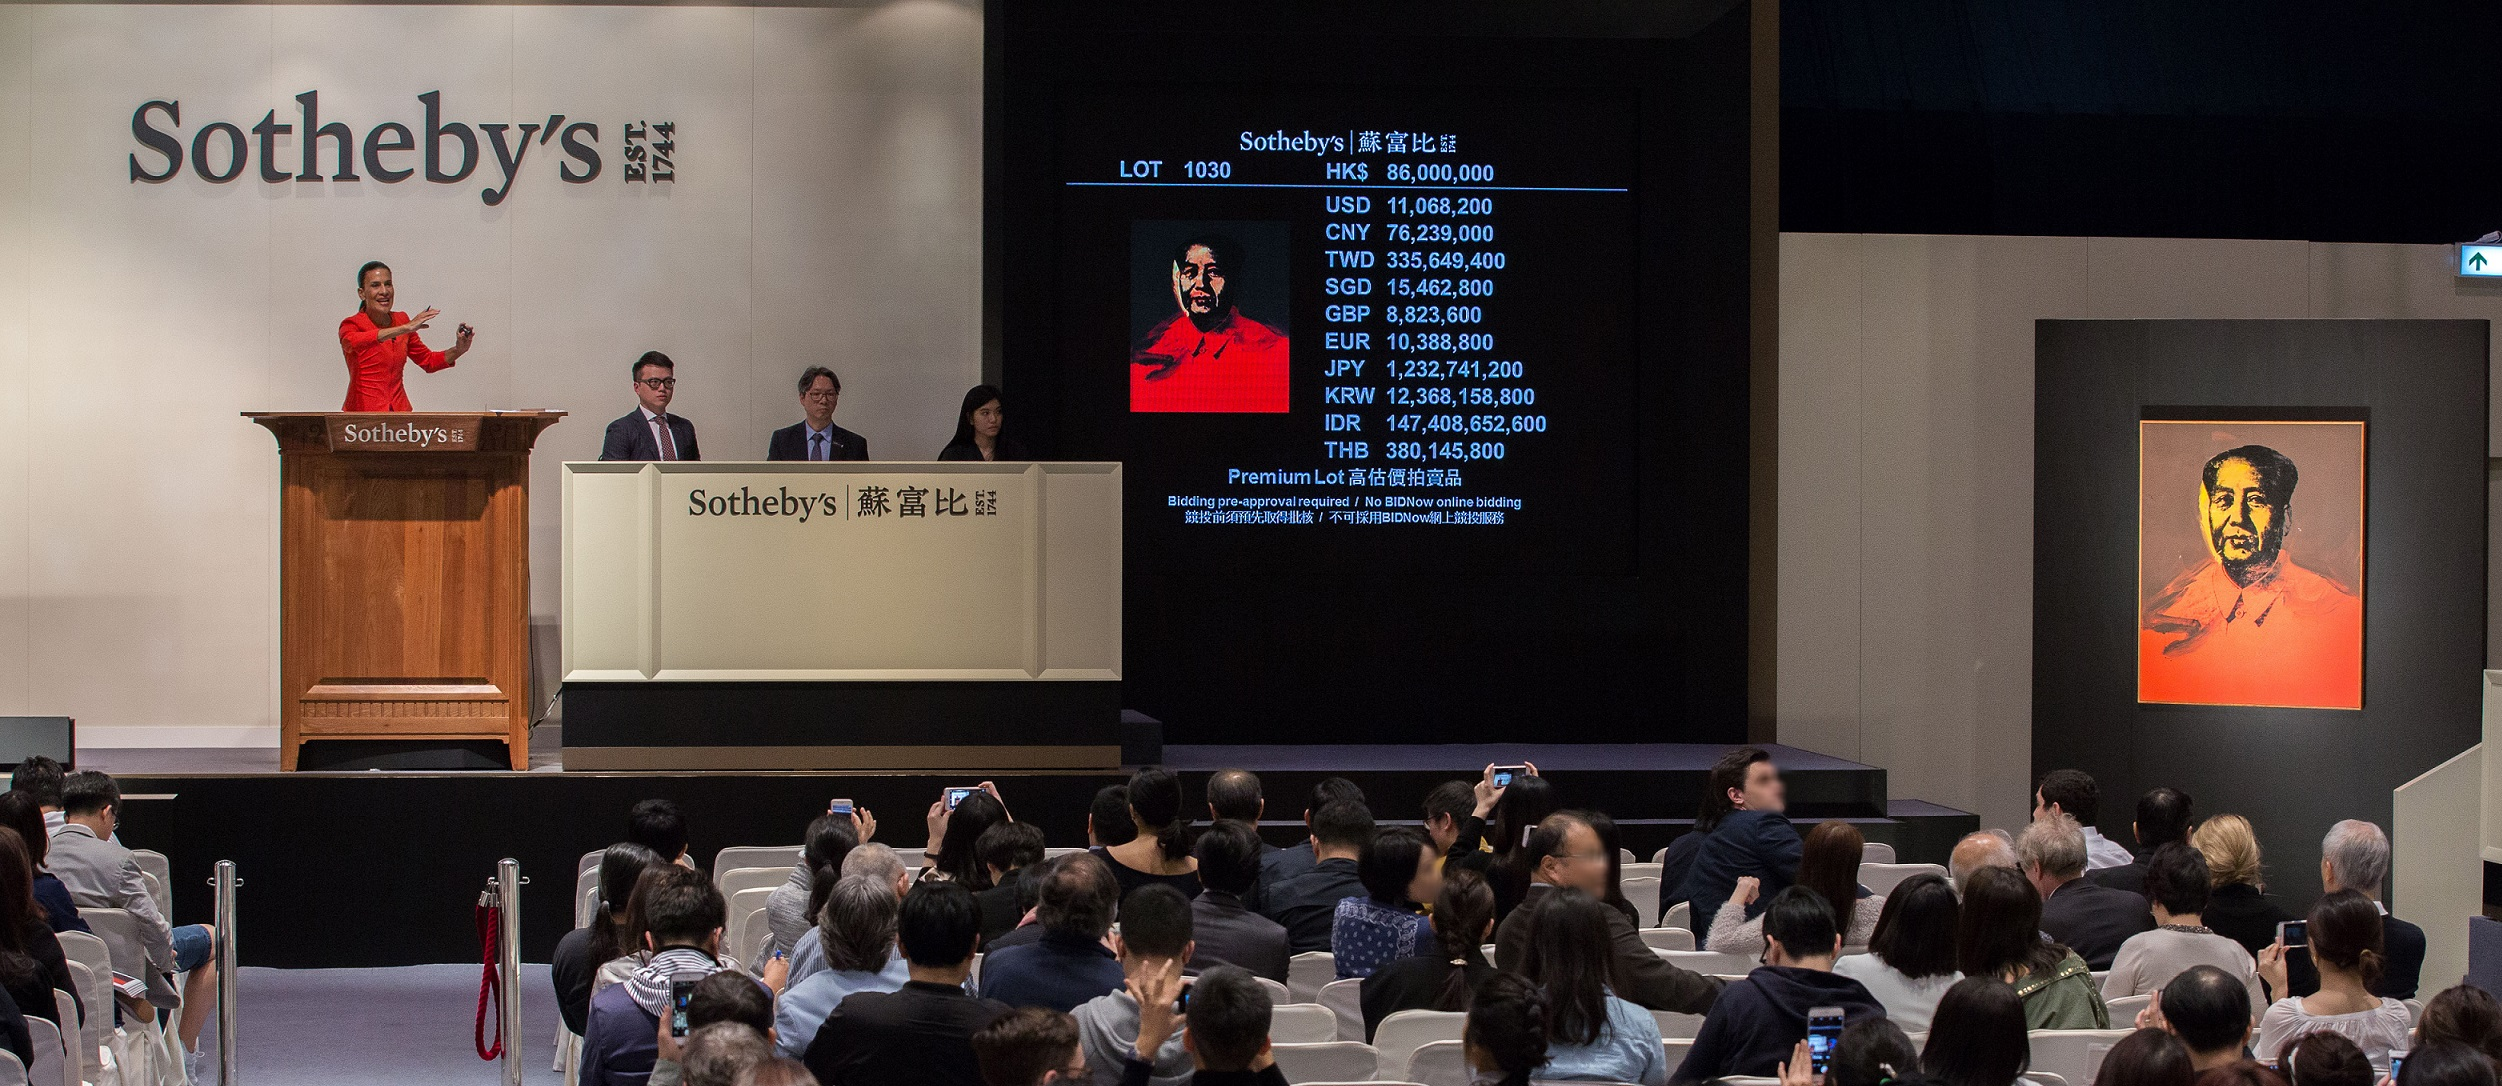 Sothebys Auction Results >> Sotheby S Hong Kong Spring 2017 Modern And Contemporary Art